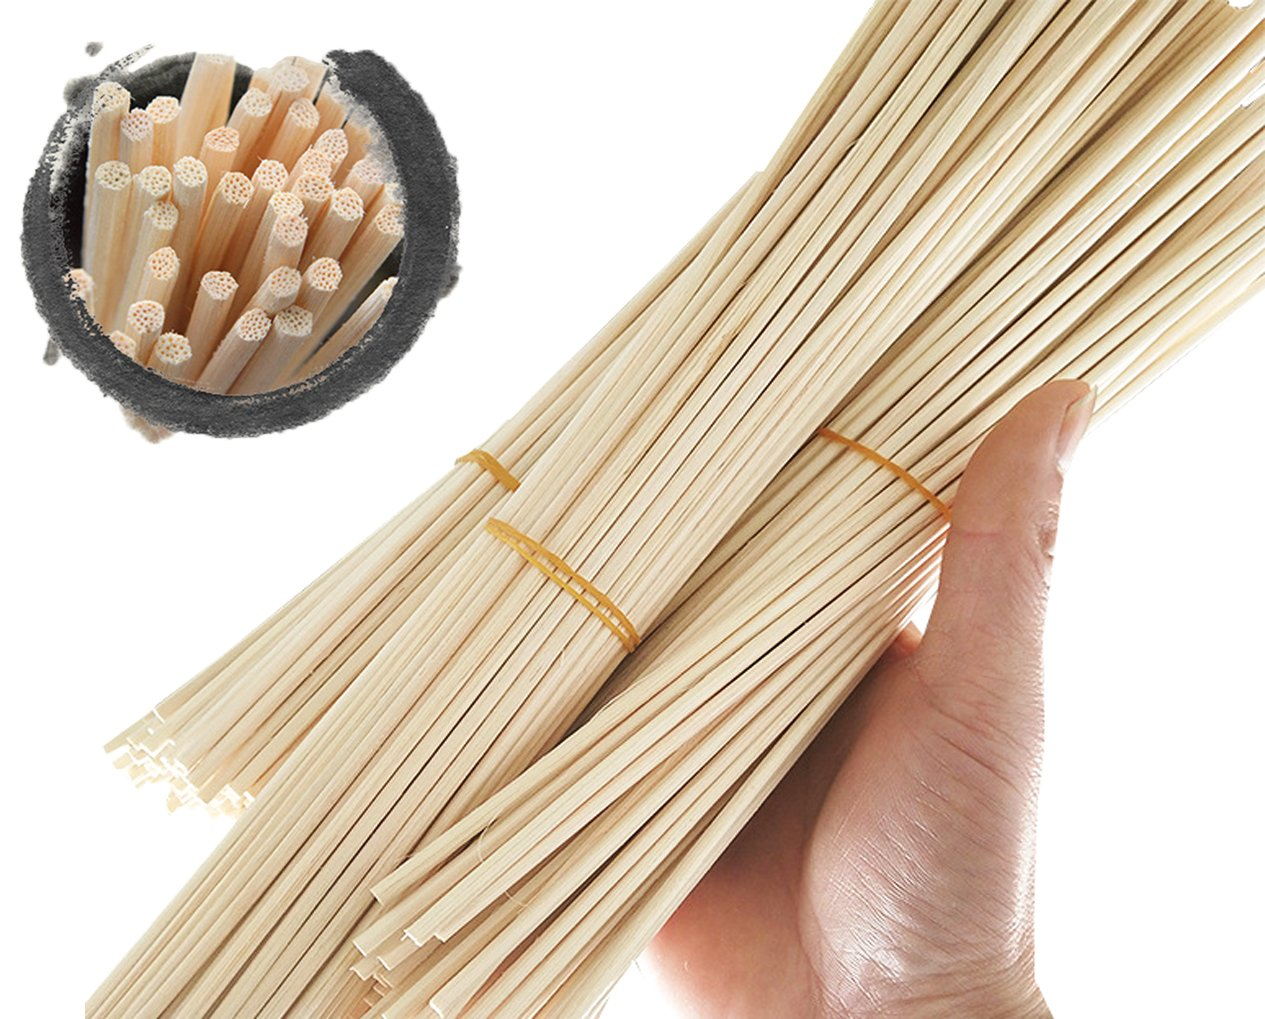 Newbested 150 Pcs Reed Diffuser Sticks